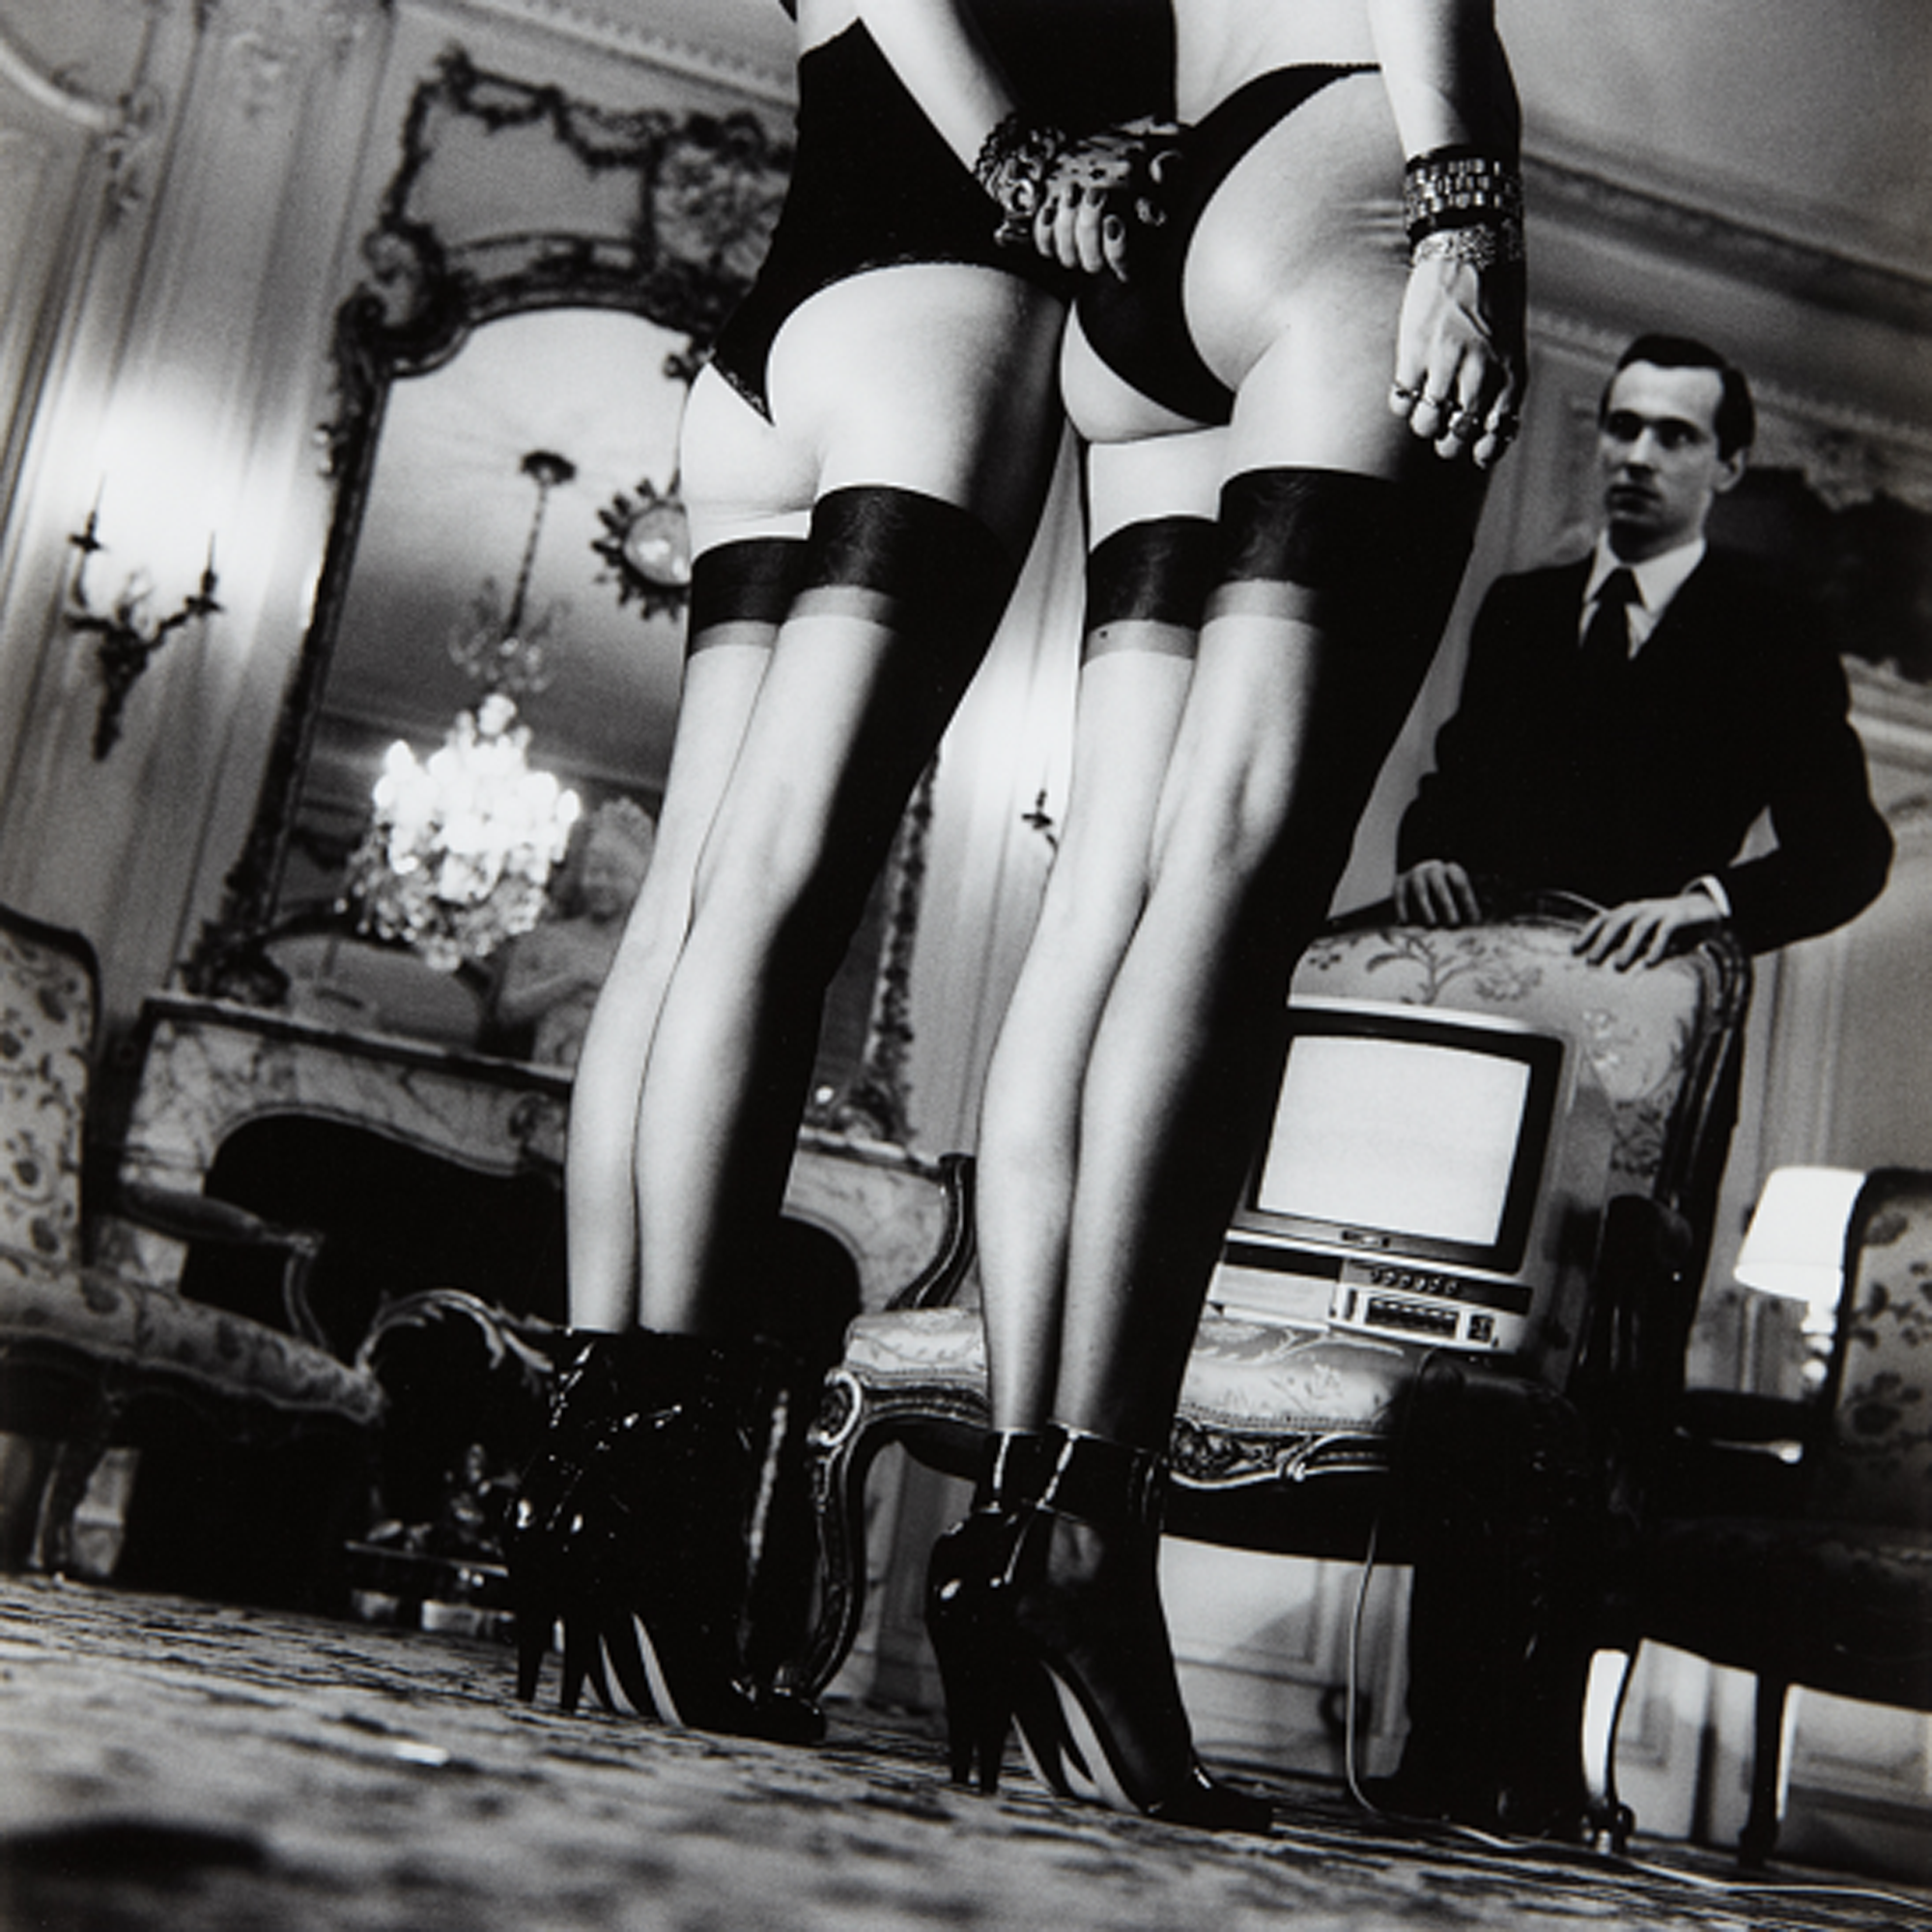 HELMUT NEWTON Two pairs of legs in black stockings, Paris, 1979 Gelatin silver print from Private Property Suite III, printed 1984.png